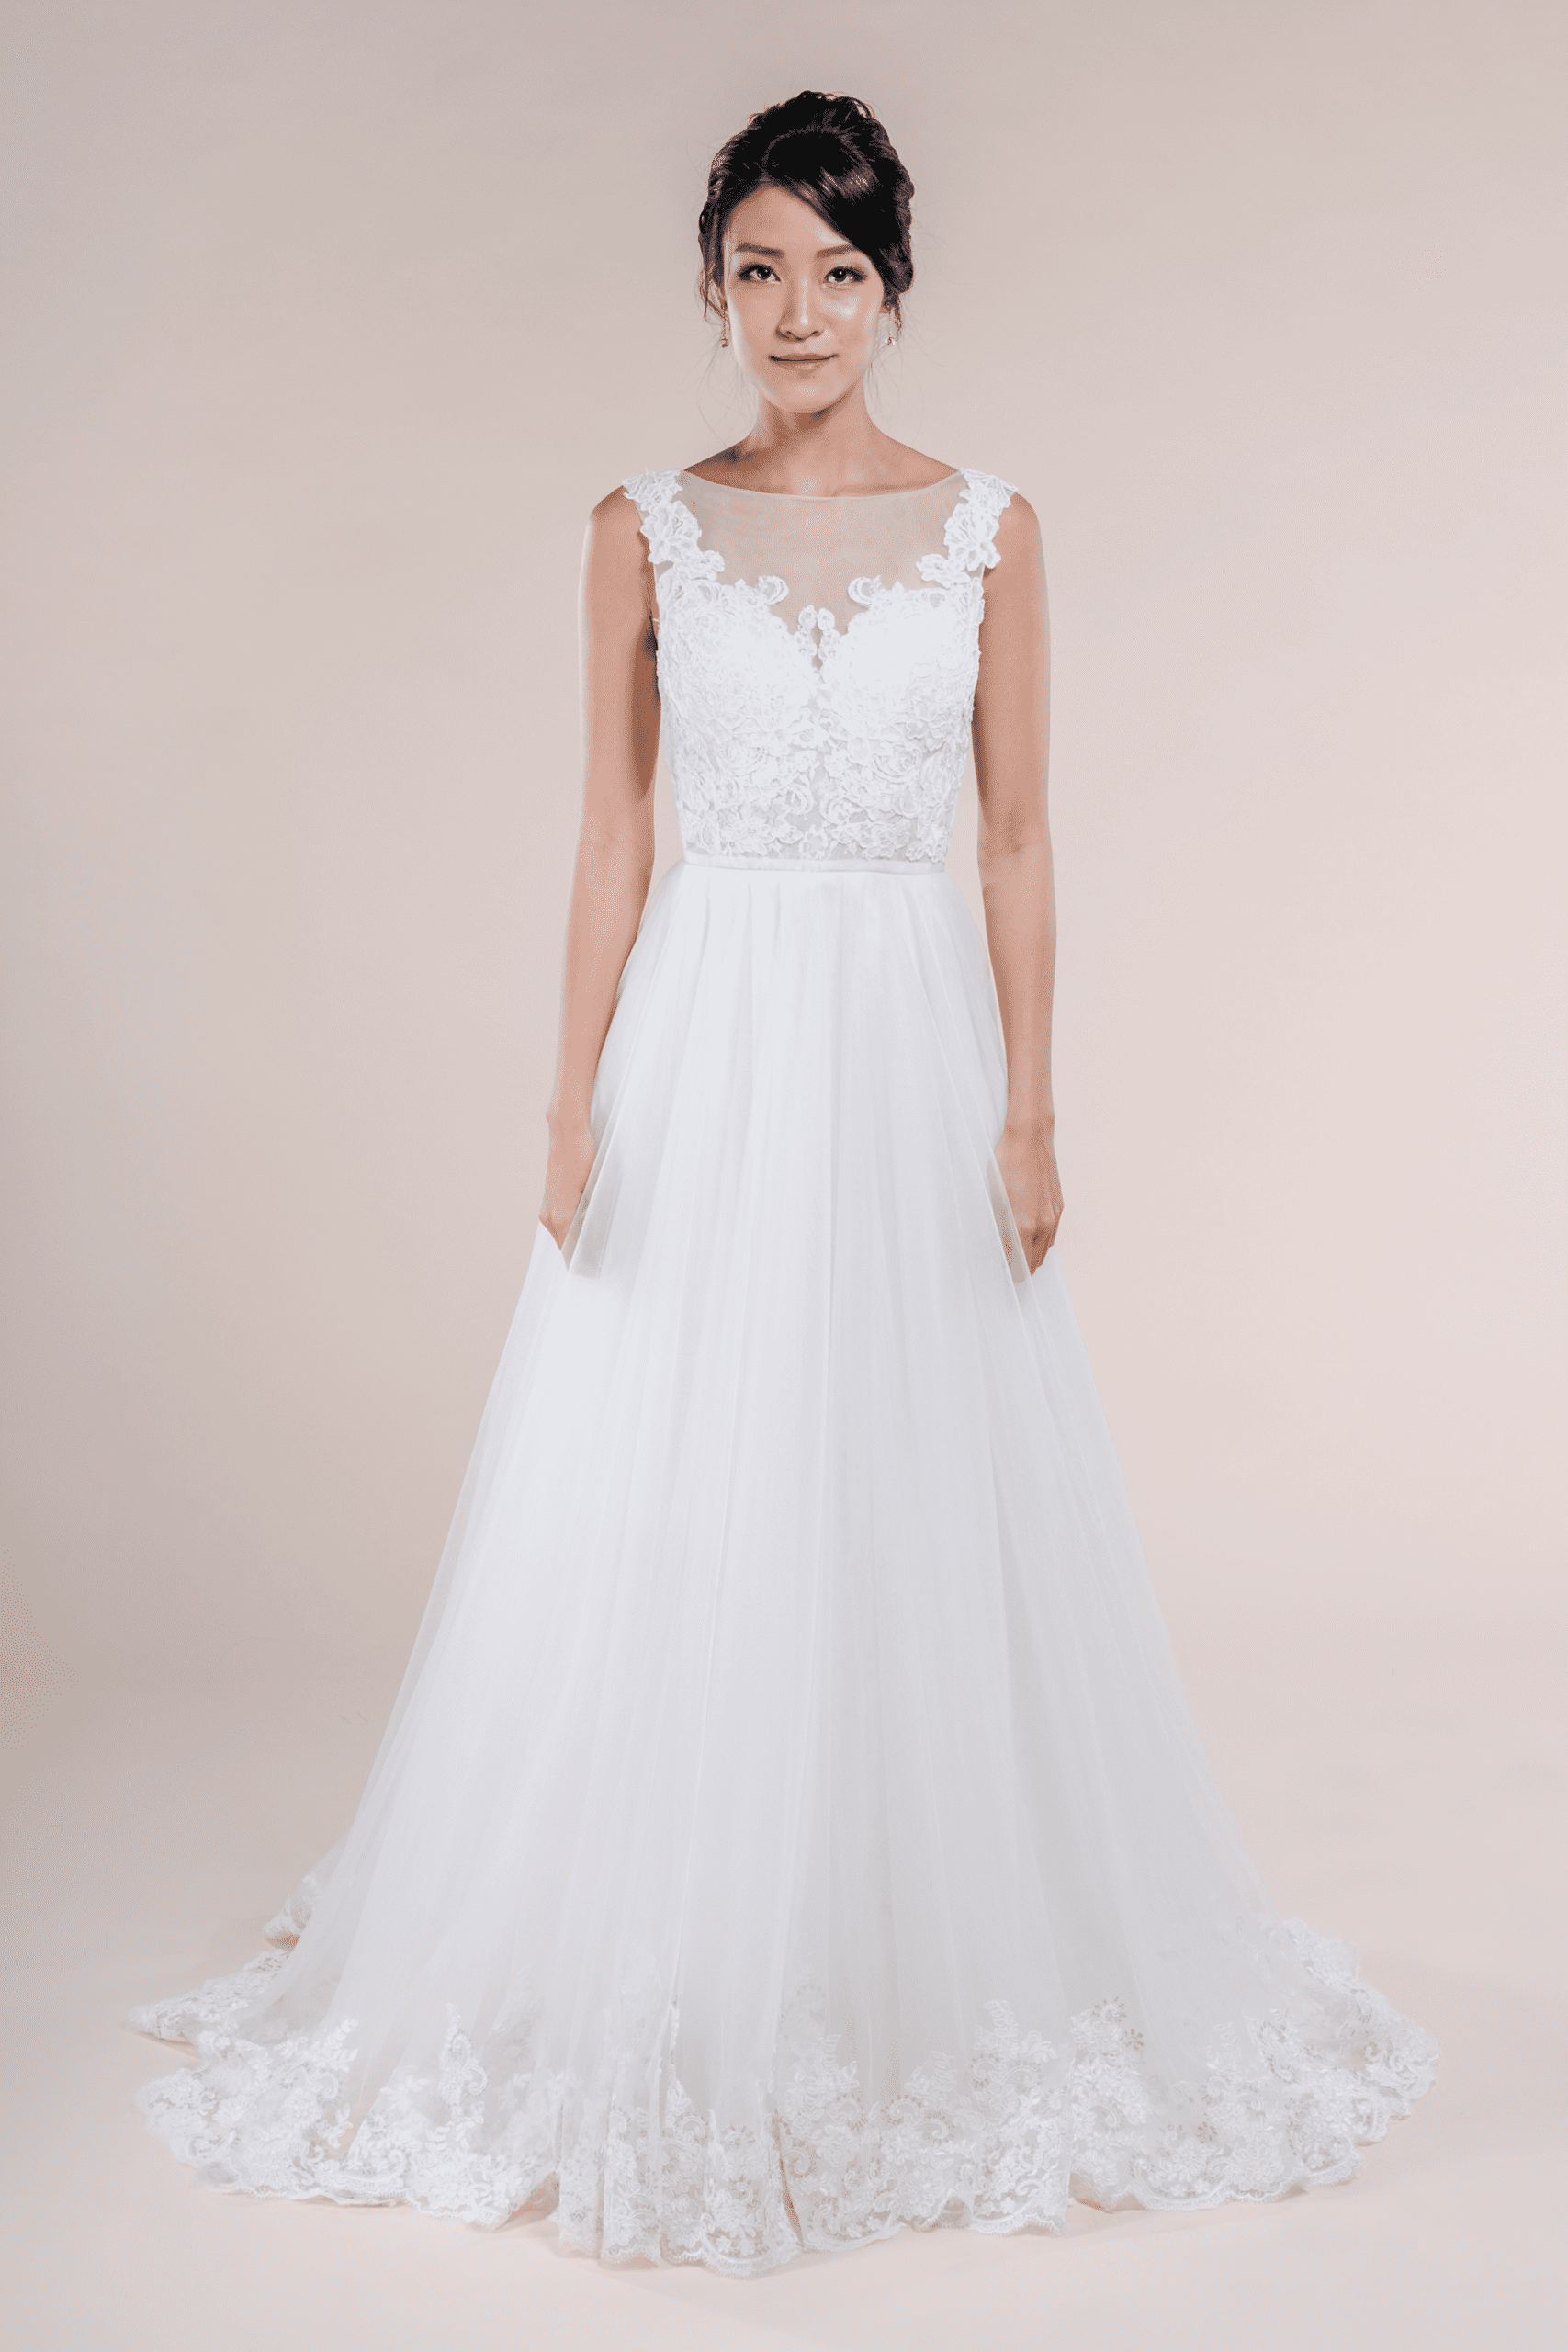 Charlotte-affordable-Bridal-Gown-for-rent-in-Singapore